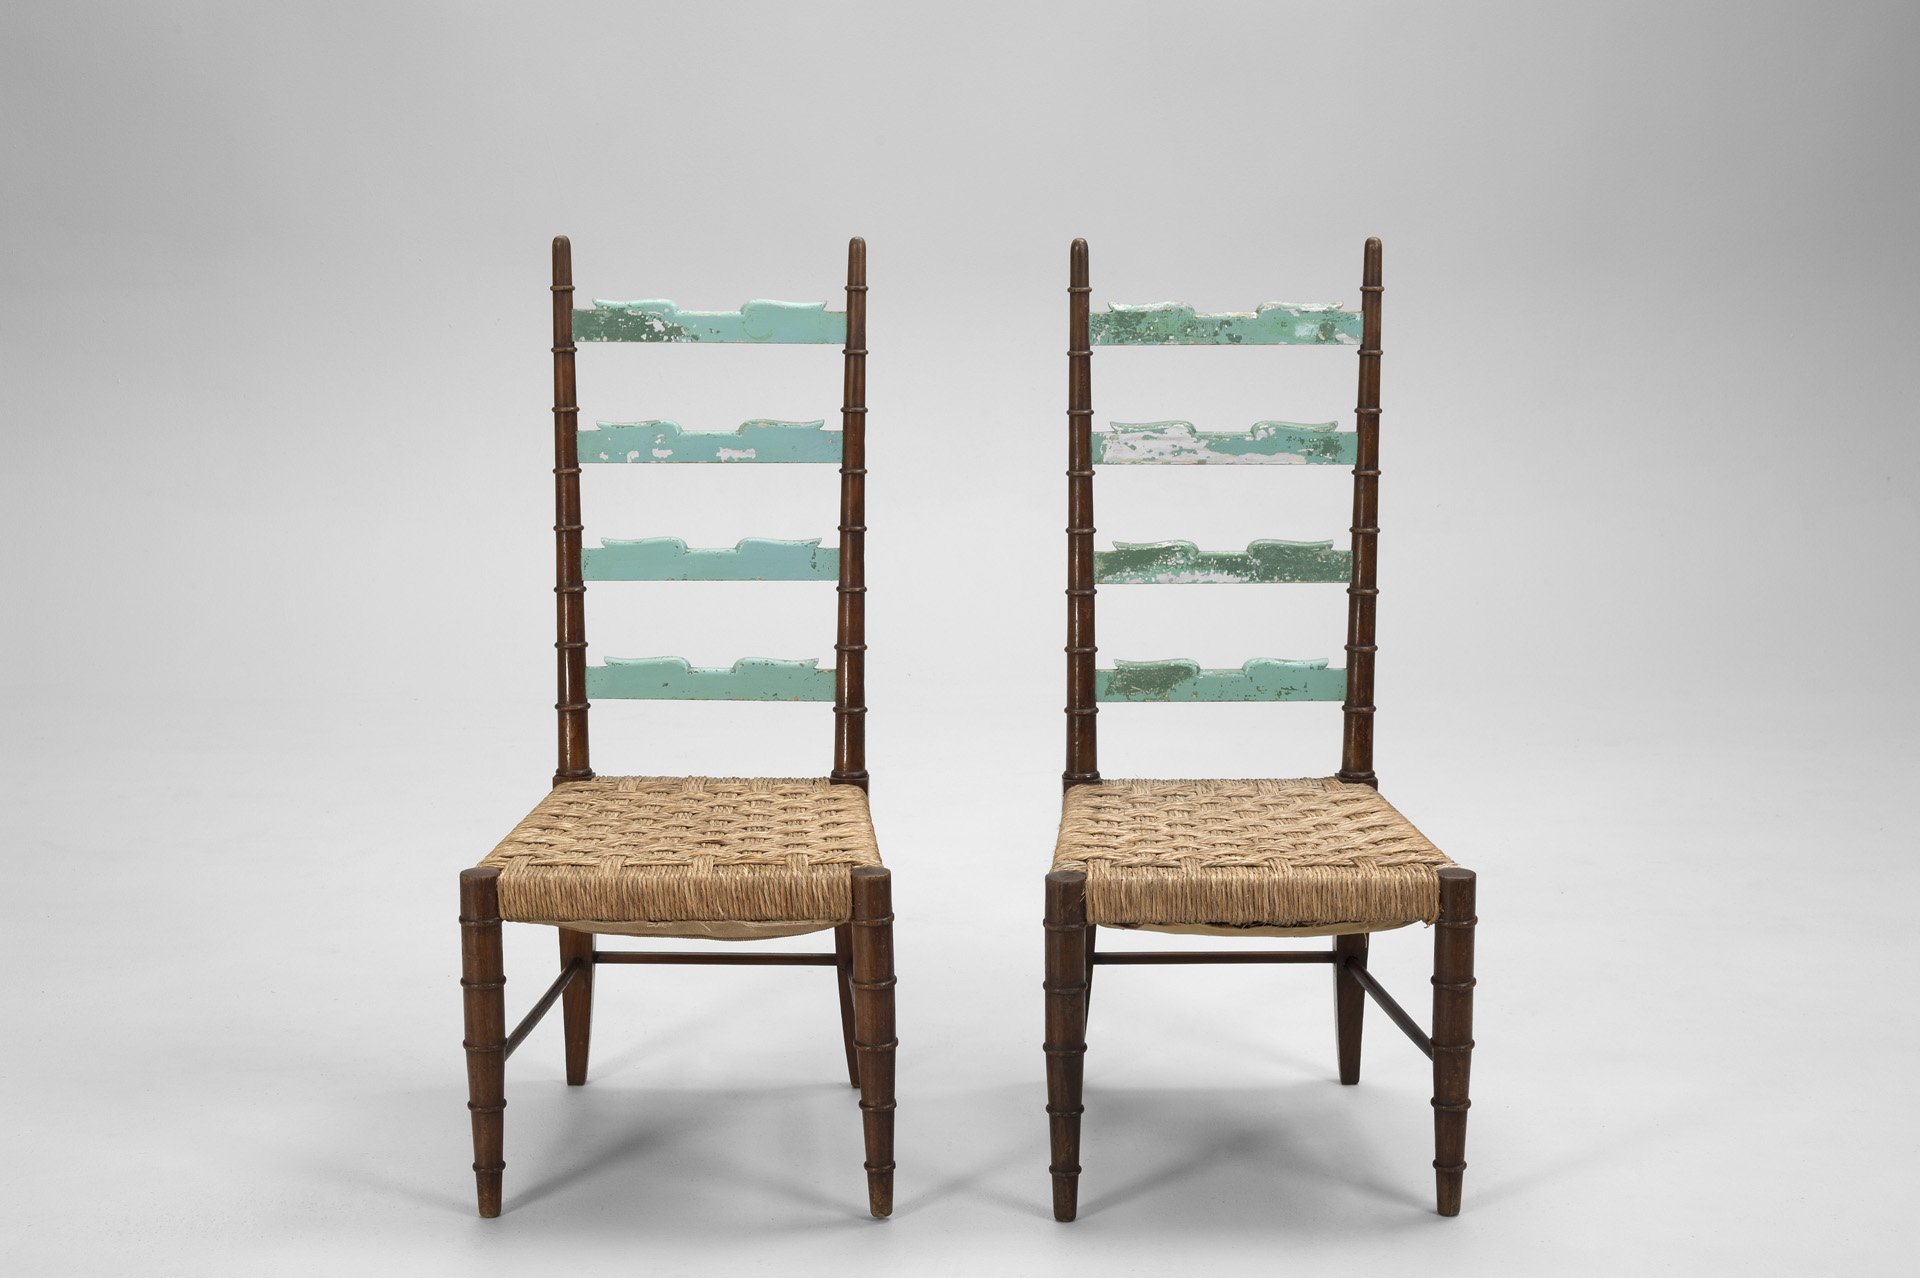 Pair of Italian Neoclassical Chairs